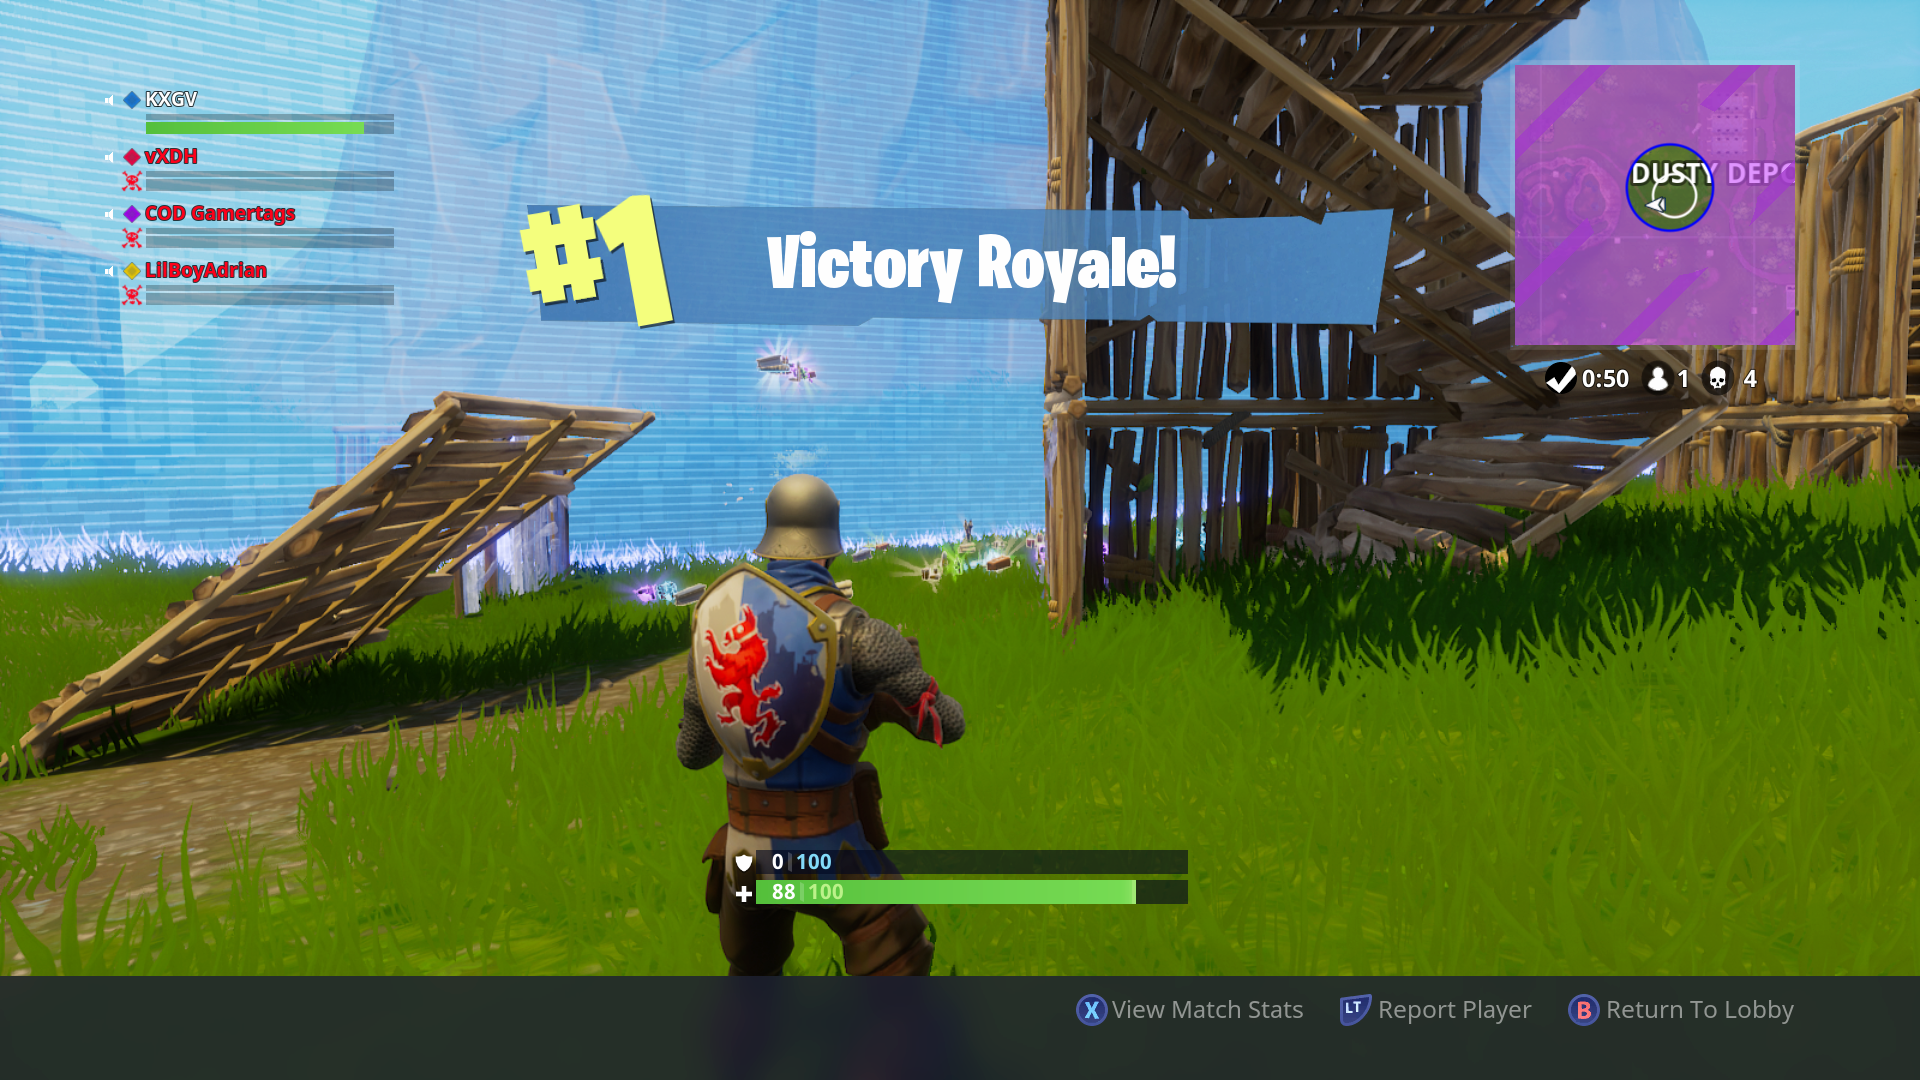 Cod Gamertags Playing Fortnite Xboxreplay Net